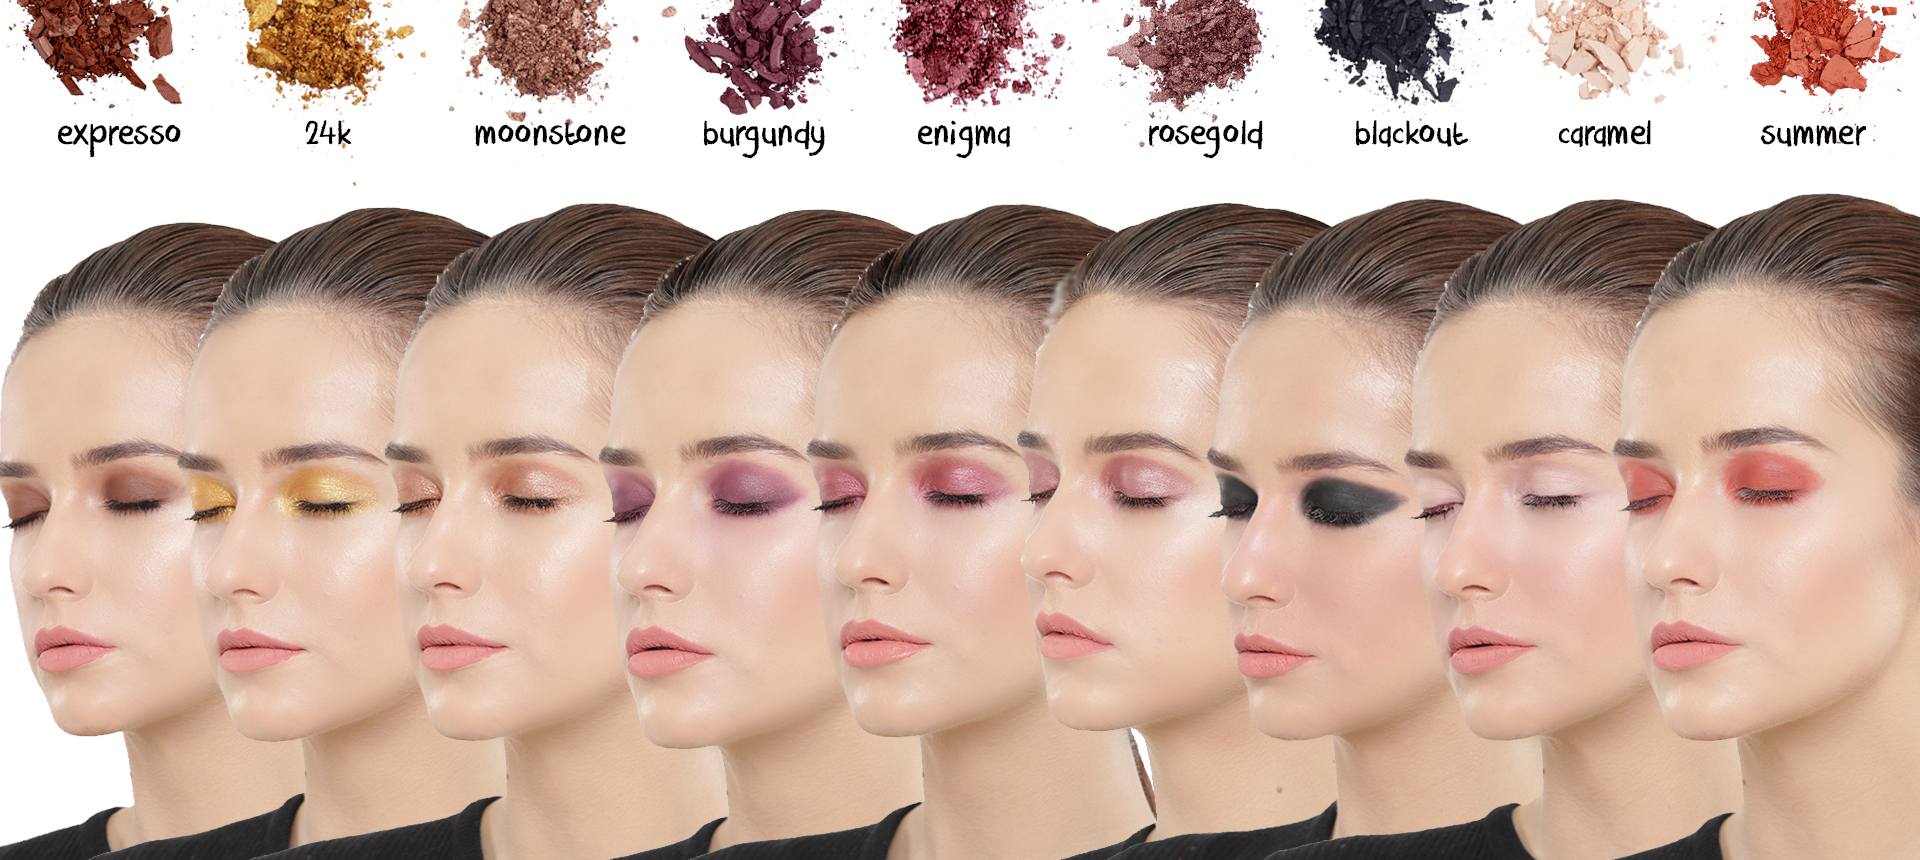 eyeshadow-glammer-enhanced.jpg